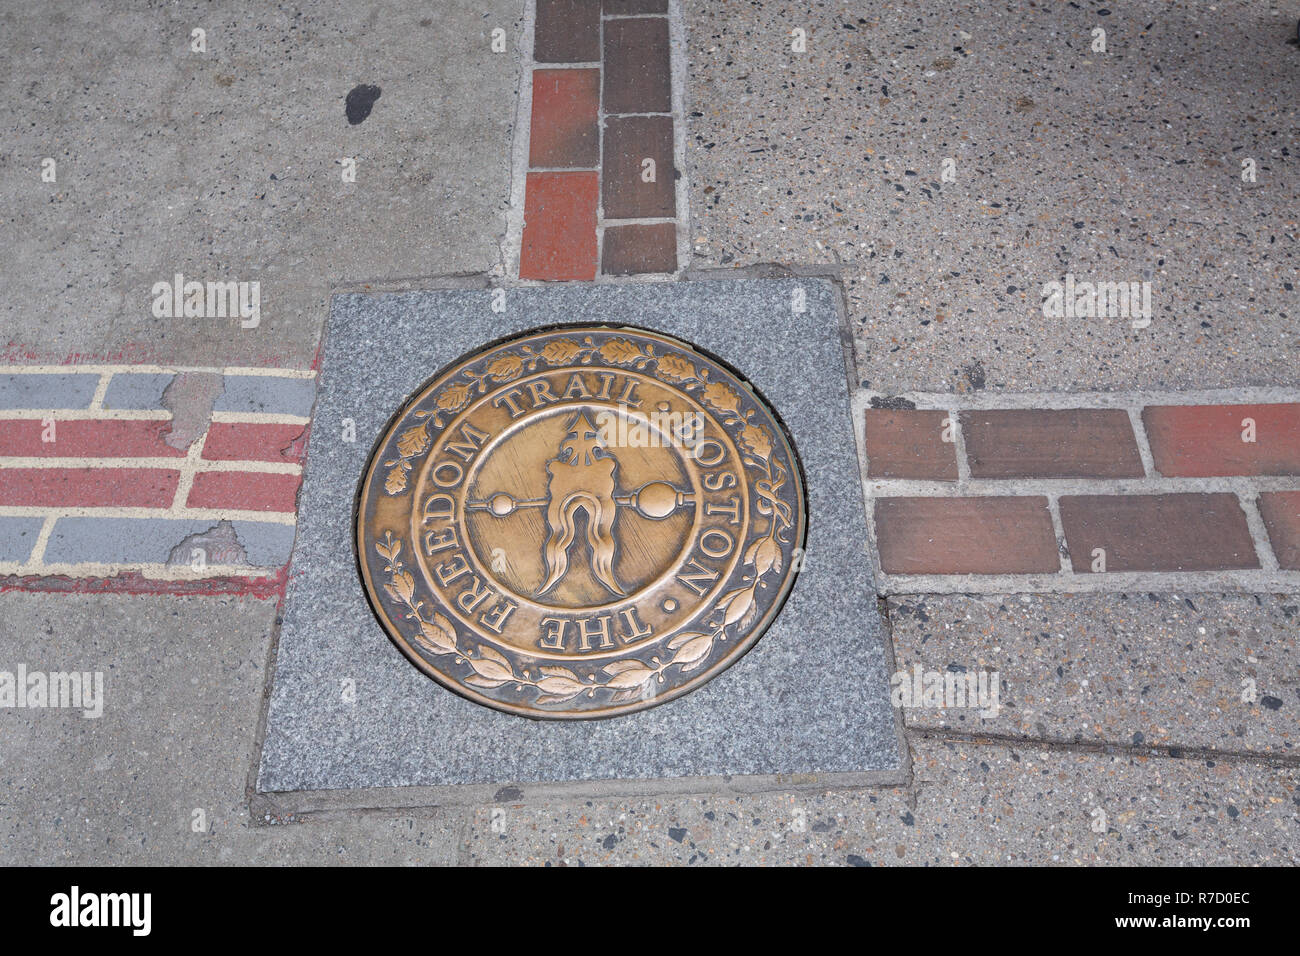 A brick line and brass medallion in the pavement marking the historic Freedom Trail in Boston, MA - Stock Image